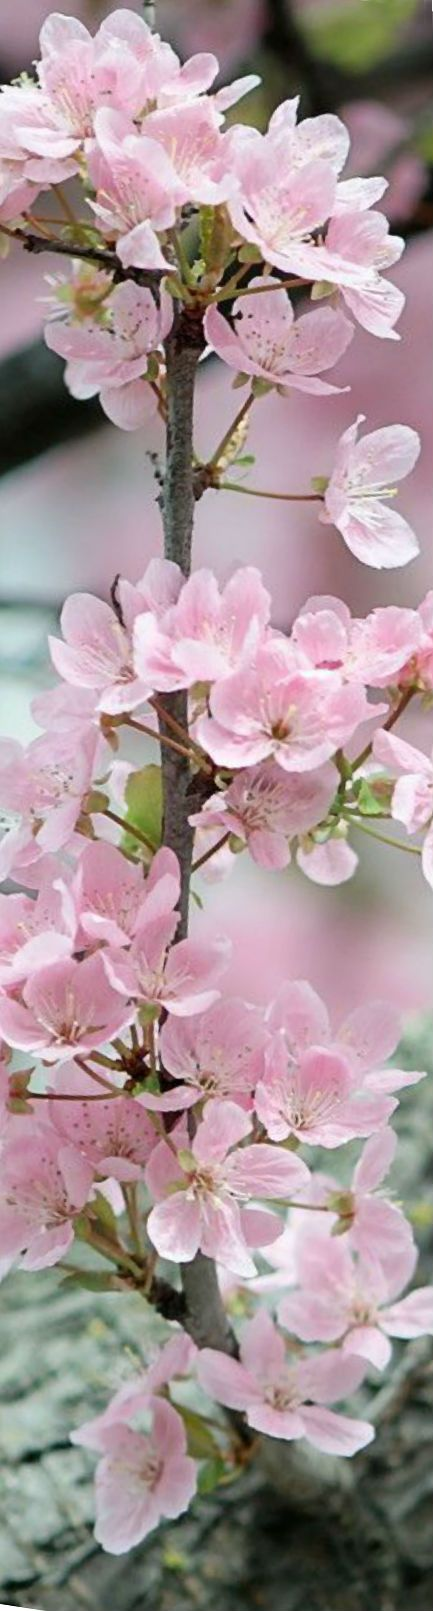 Pretty Pink Blossom Blossoms Art Beautiful Flowers Blossom Flower